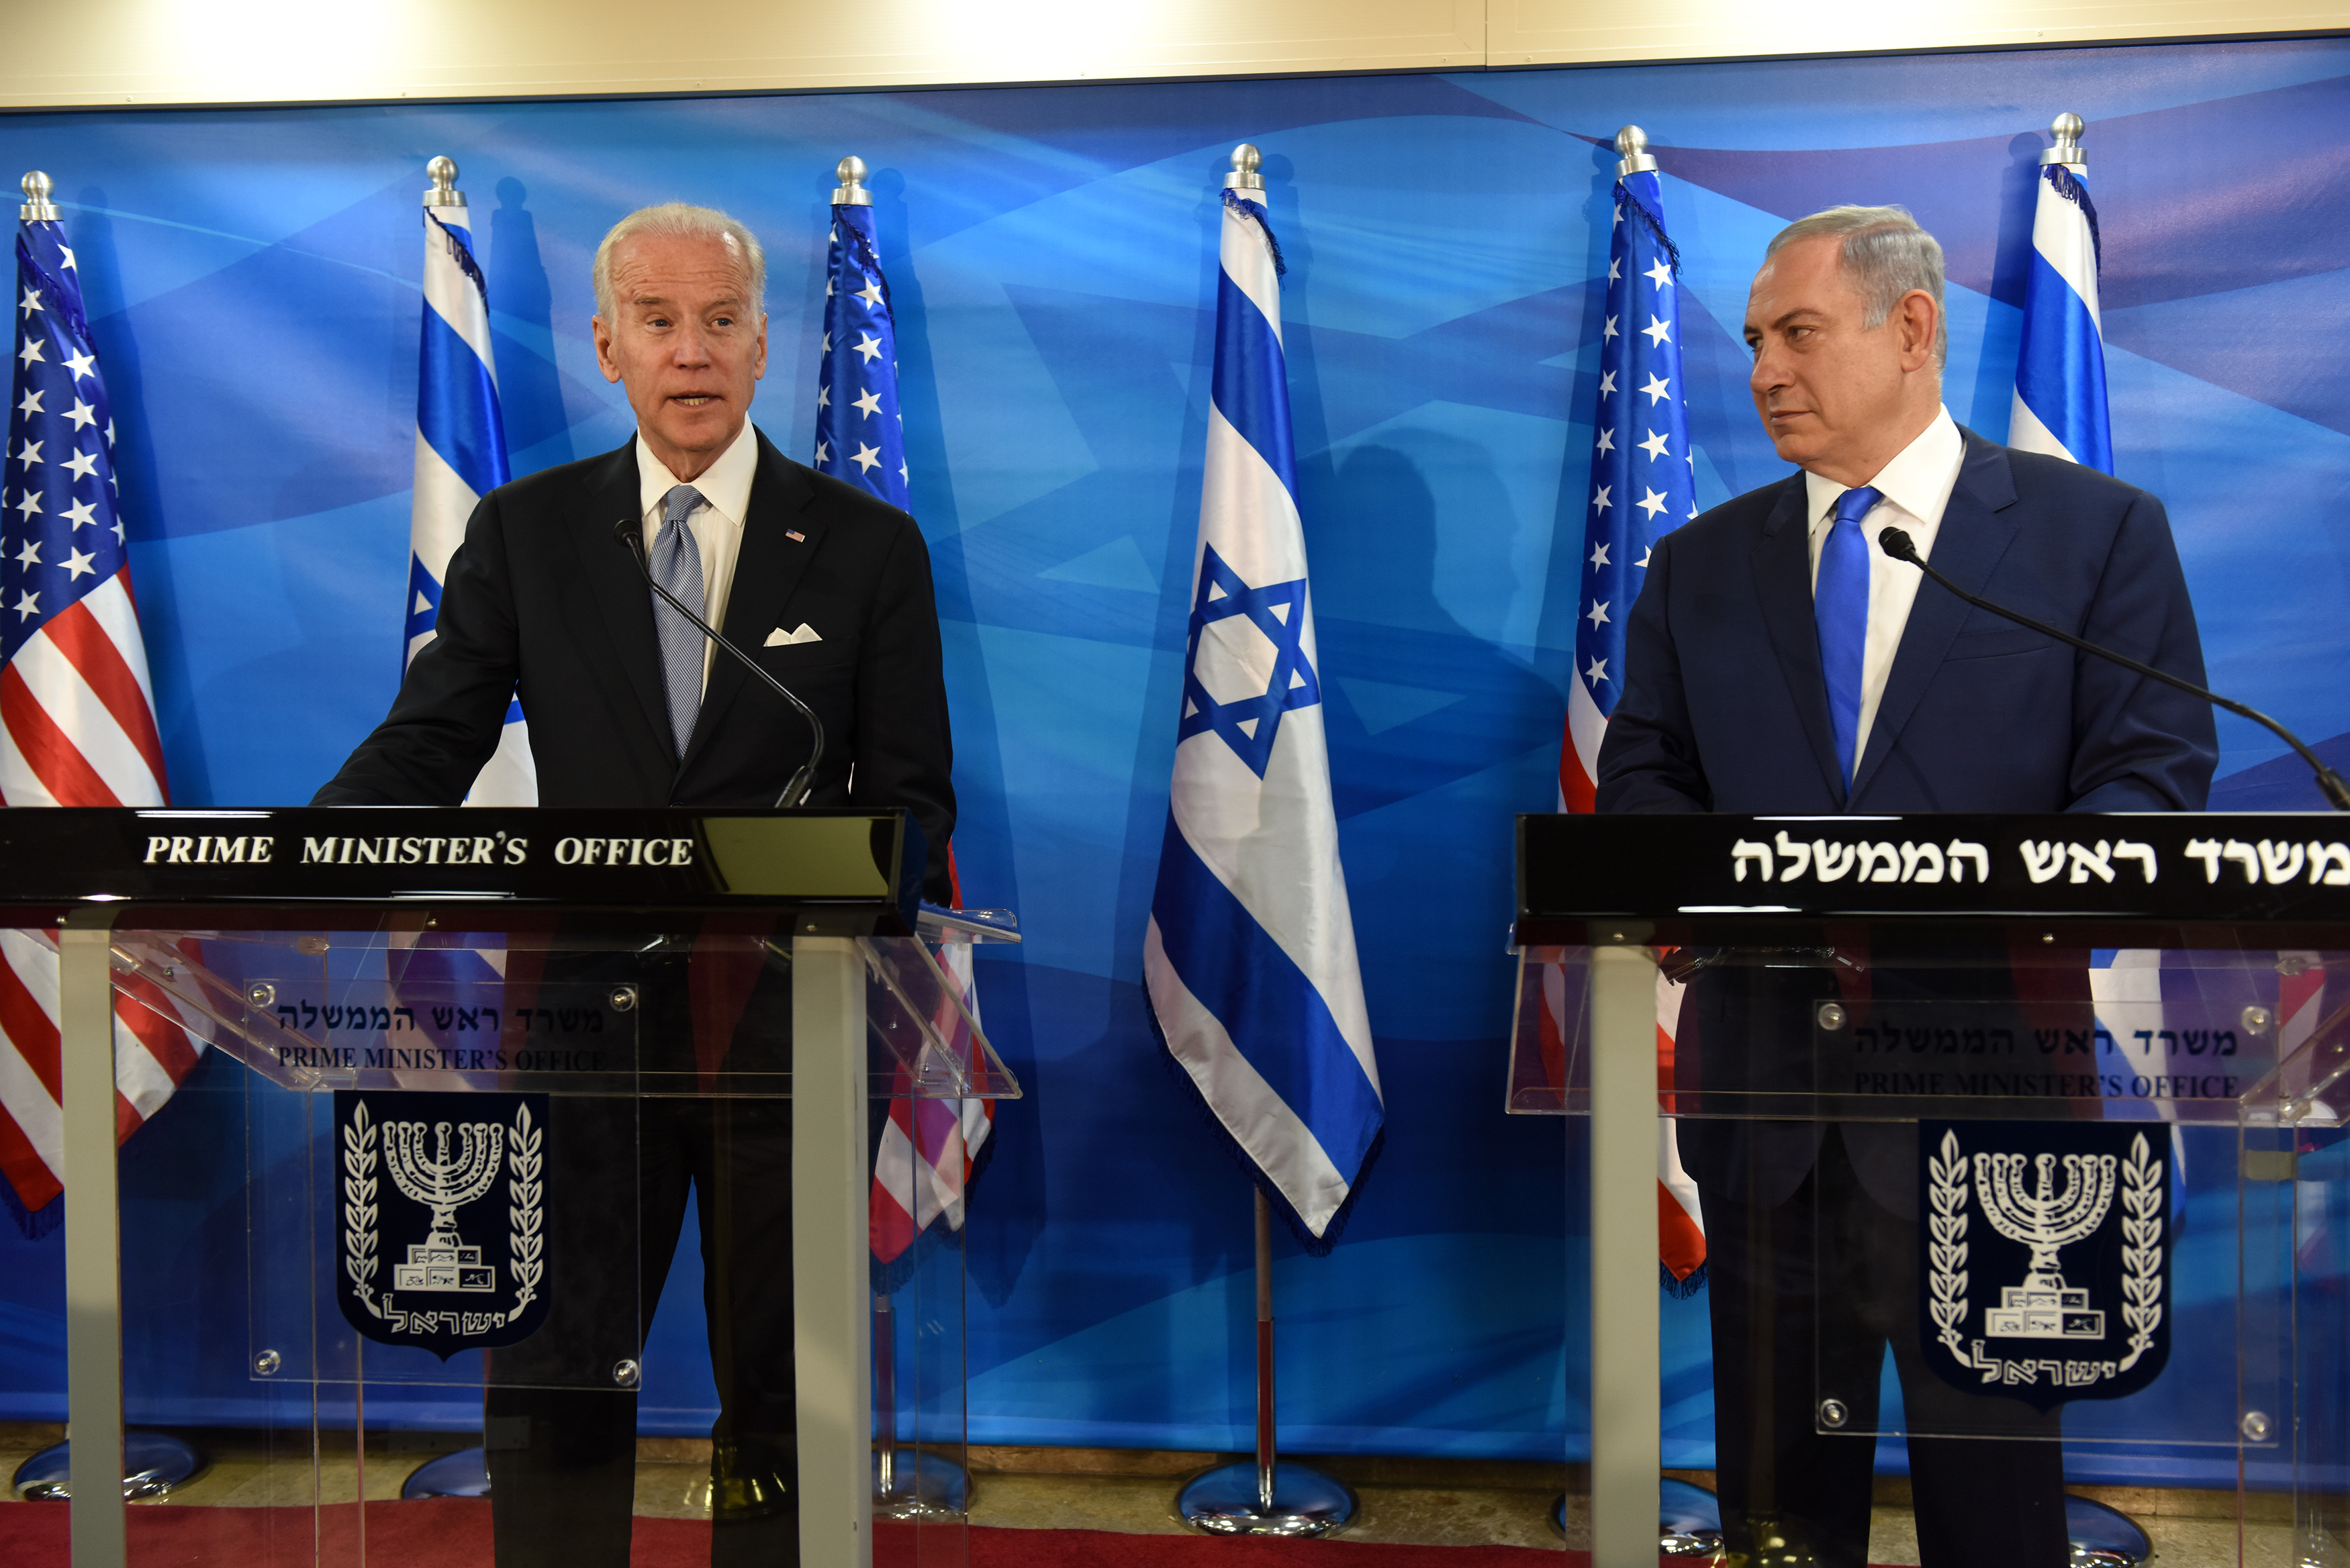 US Vice President Joe Biden and Israeli Prime Minister Benjamin Netanyahu give joint statements to press in the prime minister's office in Jerusalem on March 9, 2016.